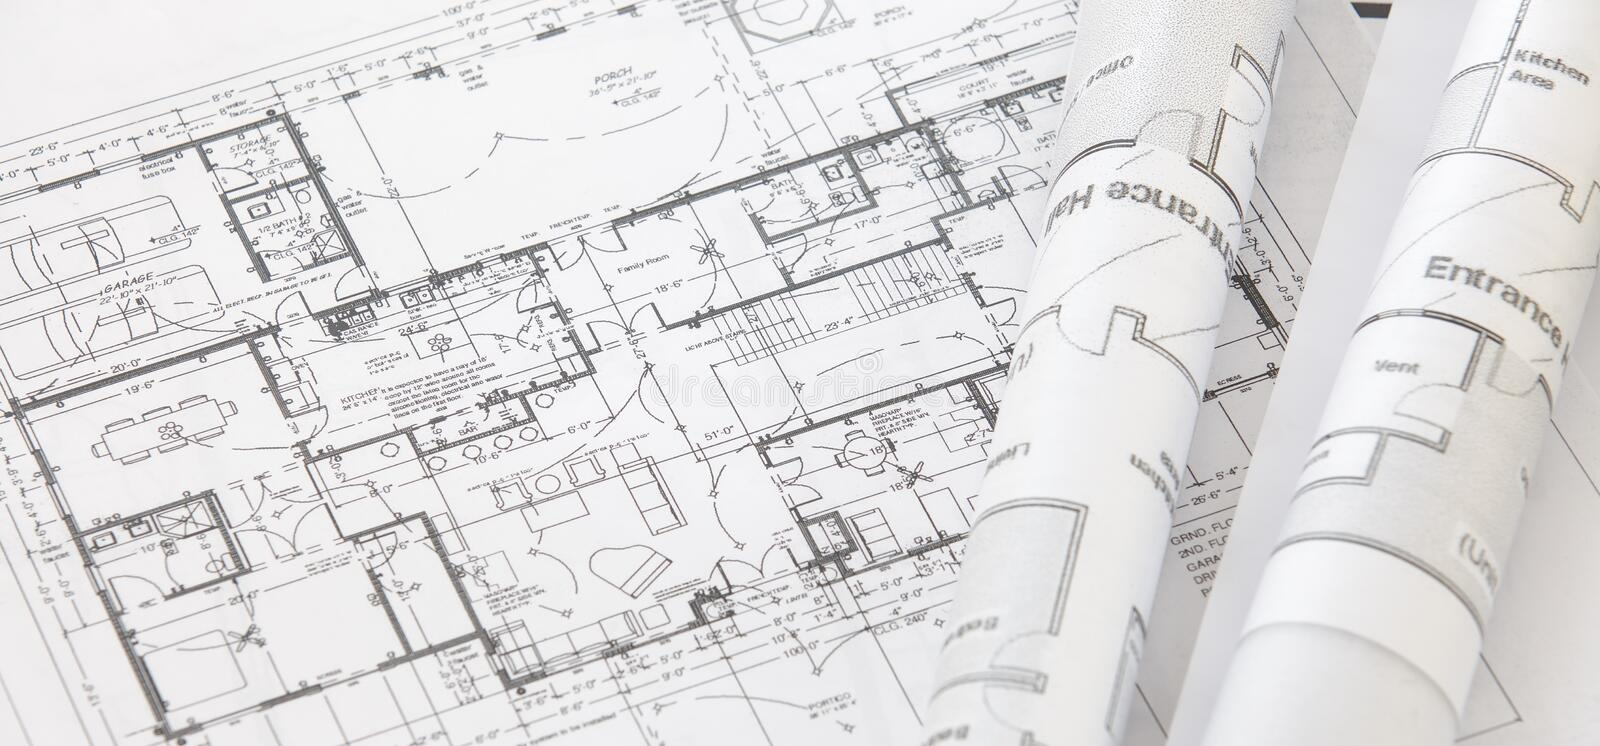 Architect rolls and plans royalty free stock images